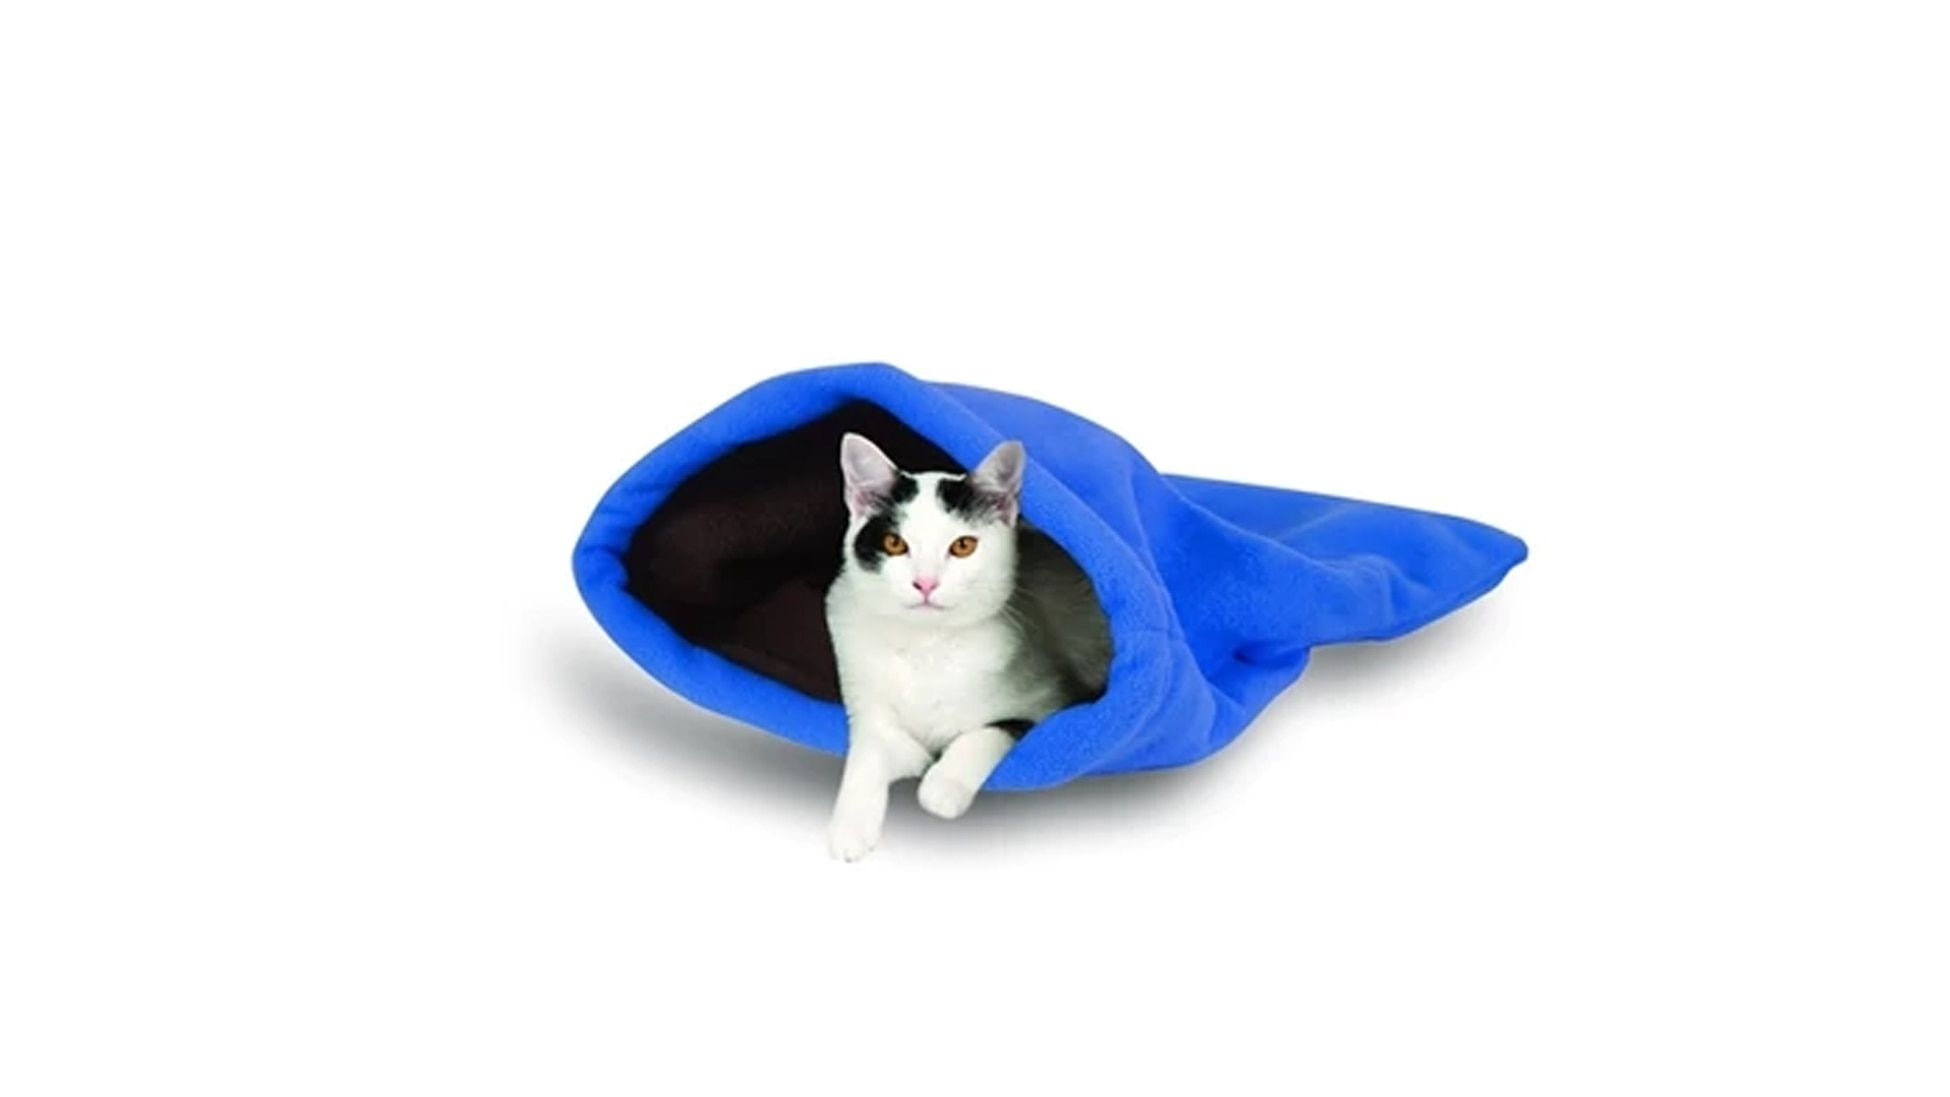 Skittish Scared Hiding Cat Daddy Cocoons To The Rescue Jackson Galaxy Cat Daddy Cat Illnesses Kitten Care